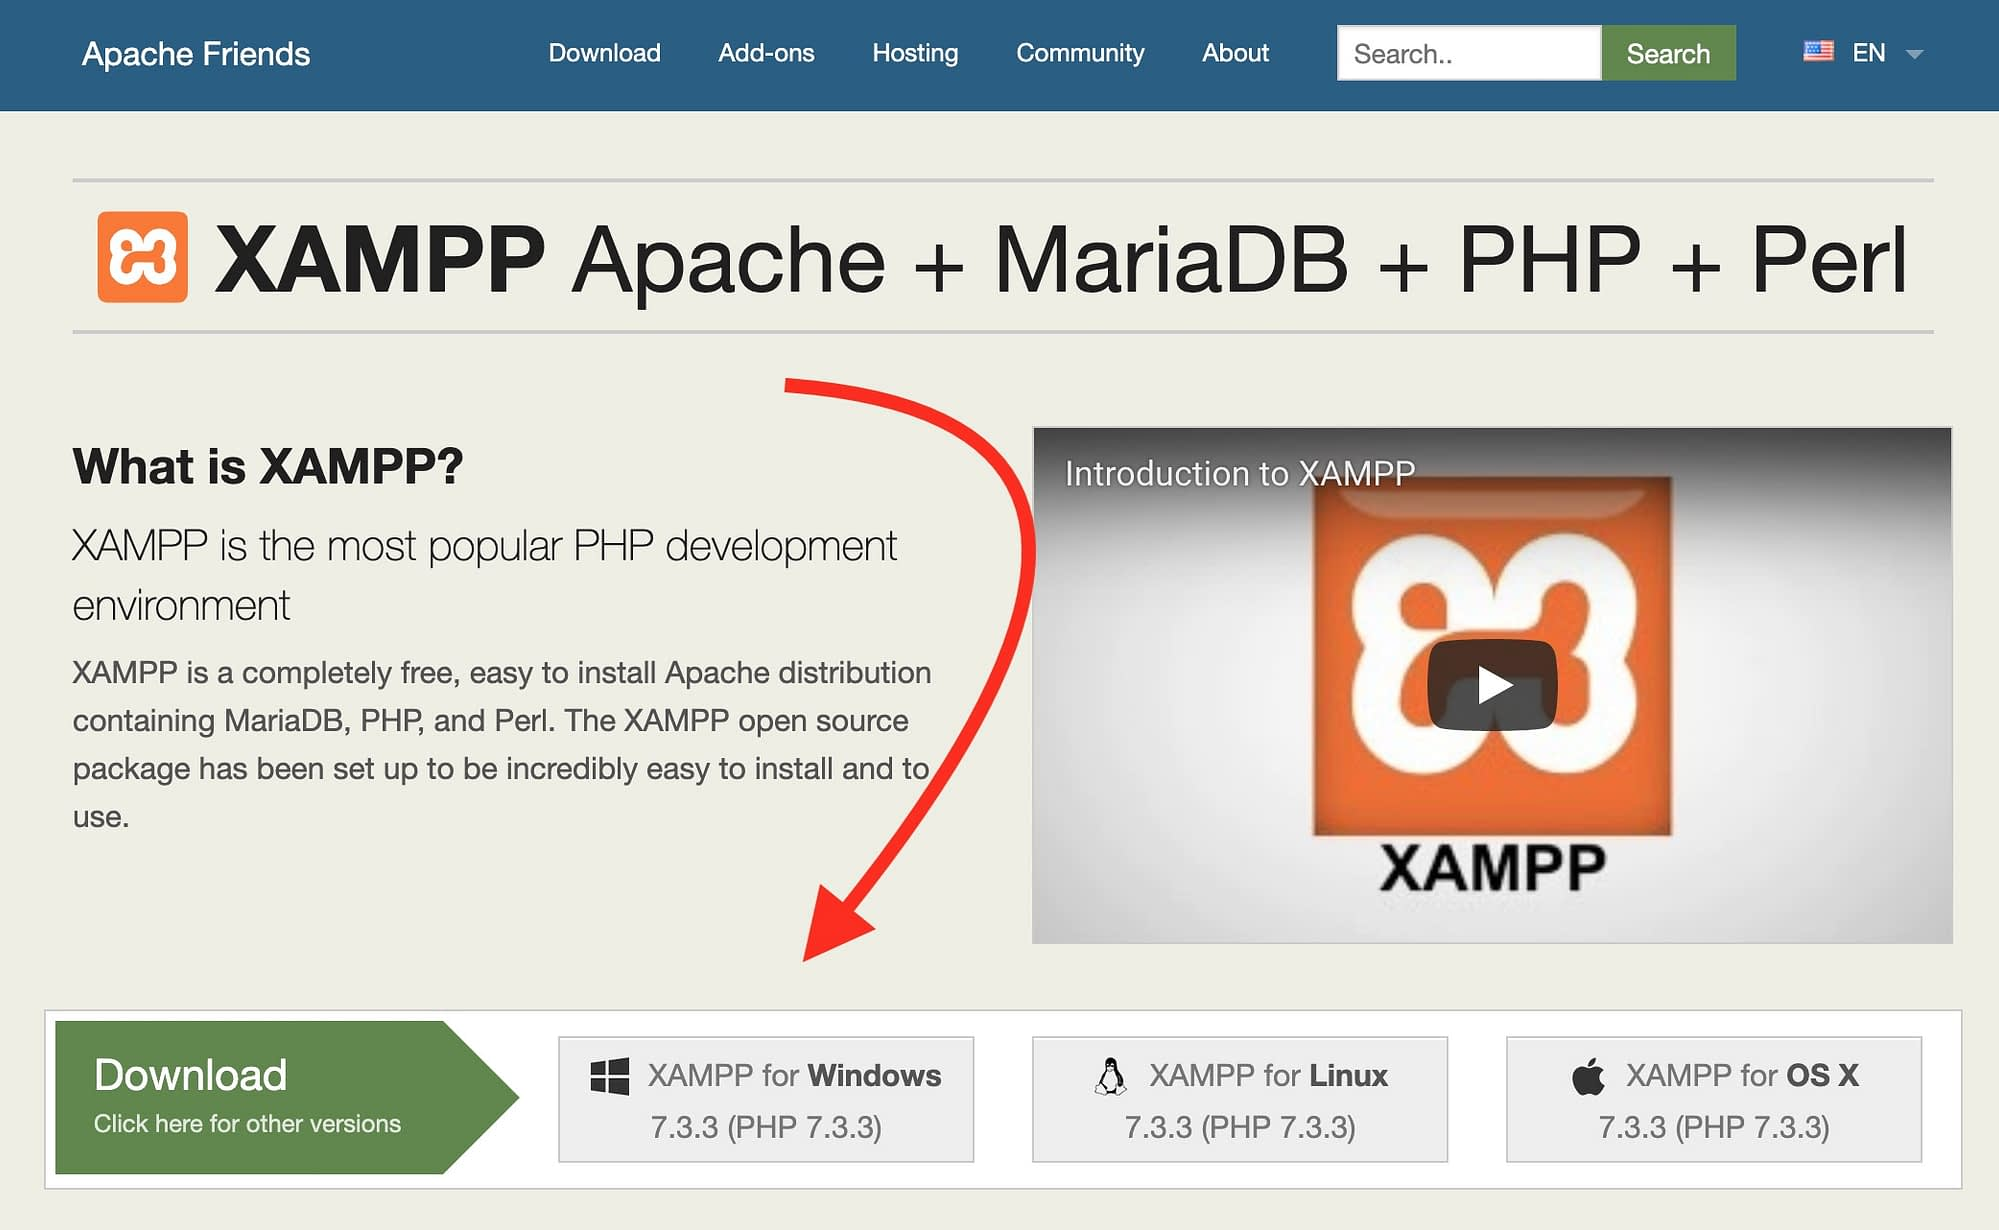 xampp website - your tool to install WordPress locally